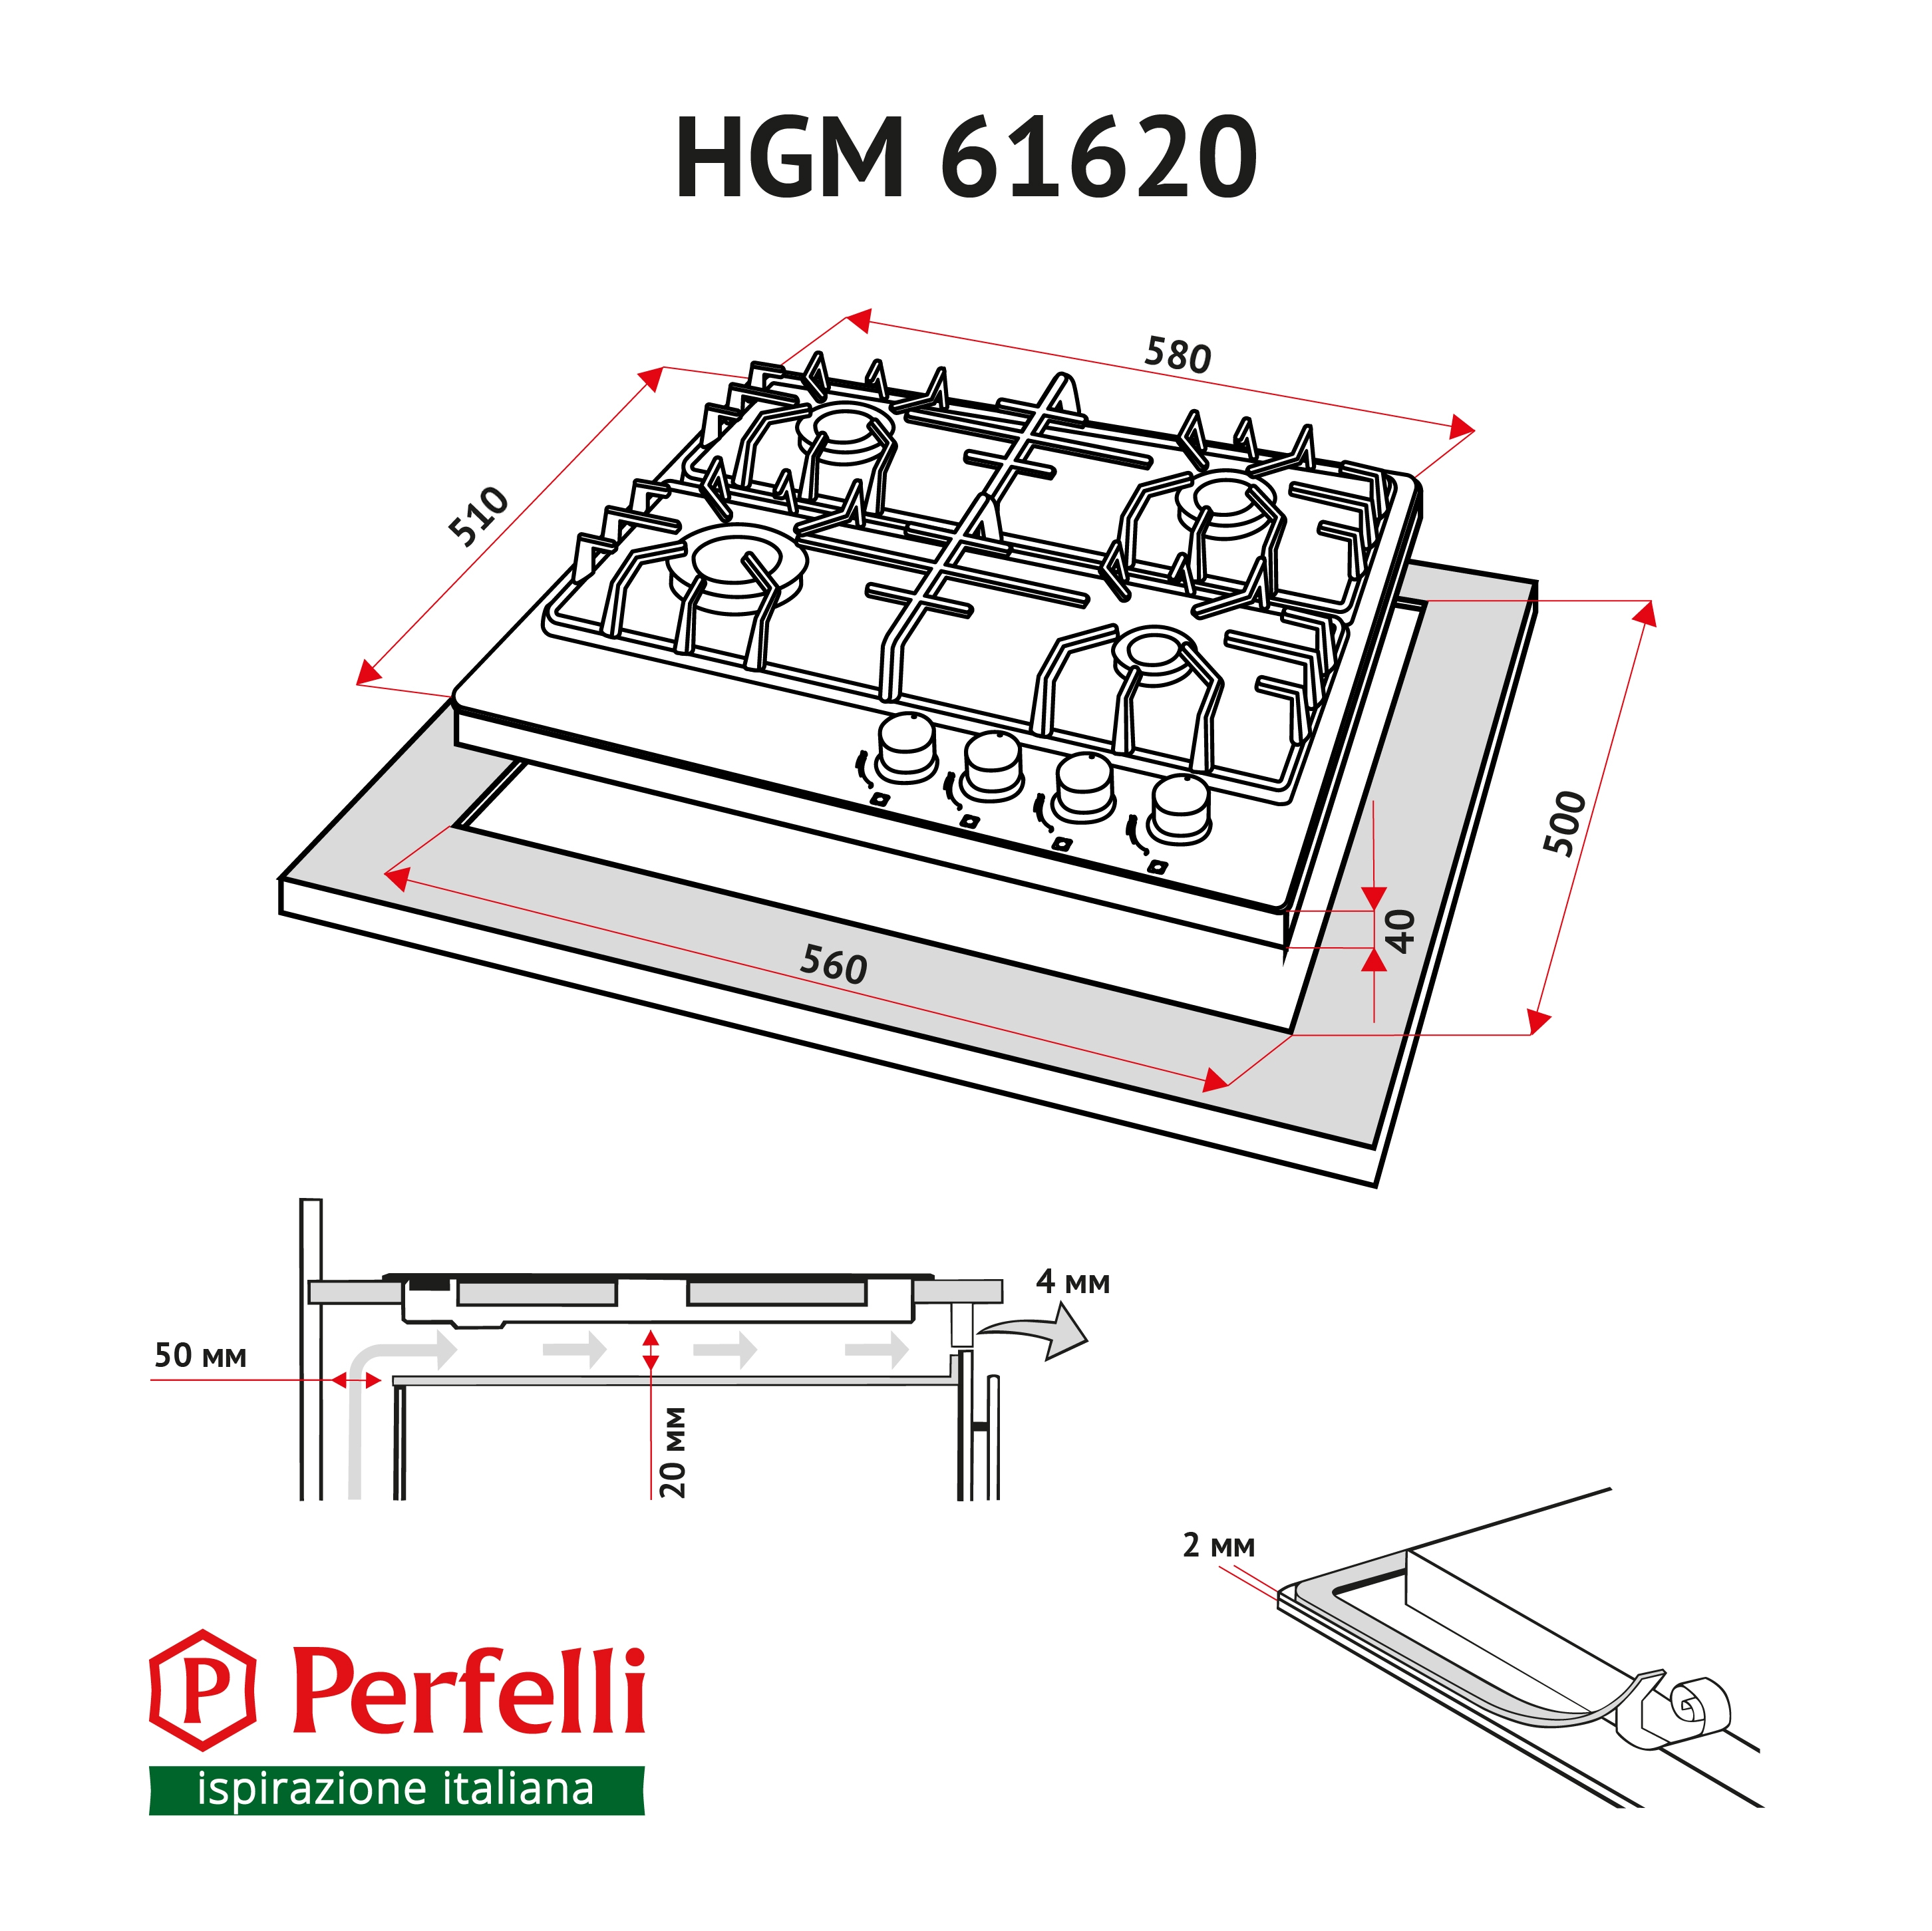 Gas Surface On Metal Perfelli HGM 61620 BL